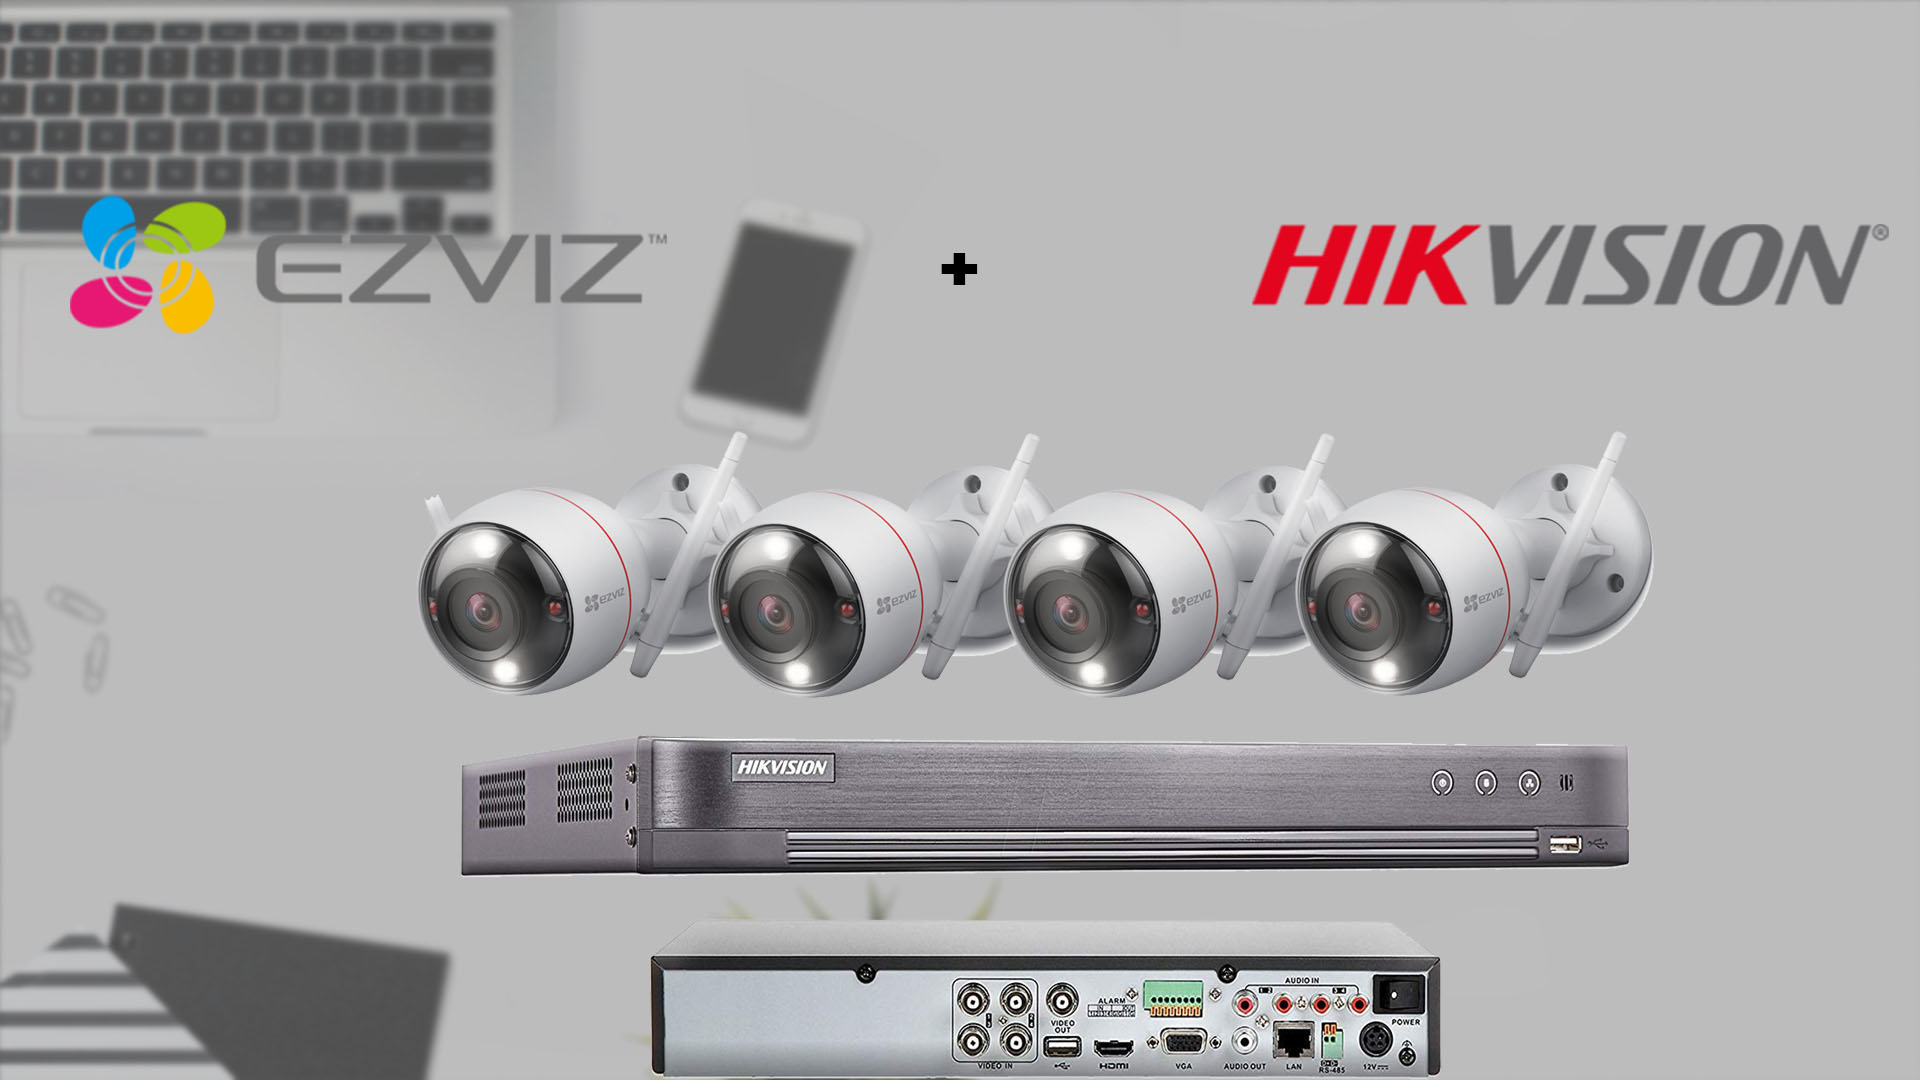 hik+ezviz wireless outdoor